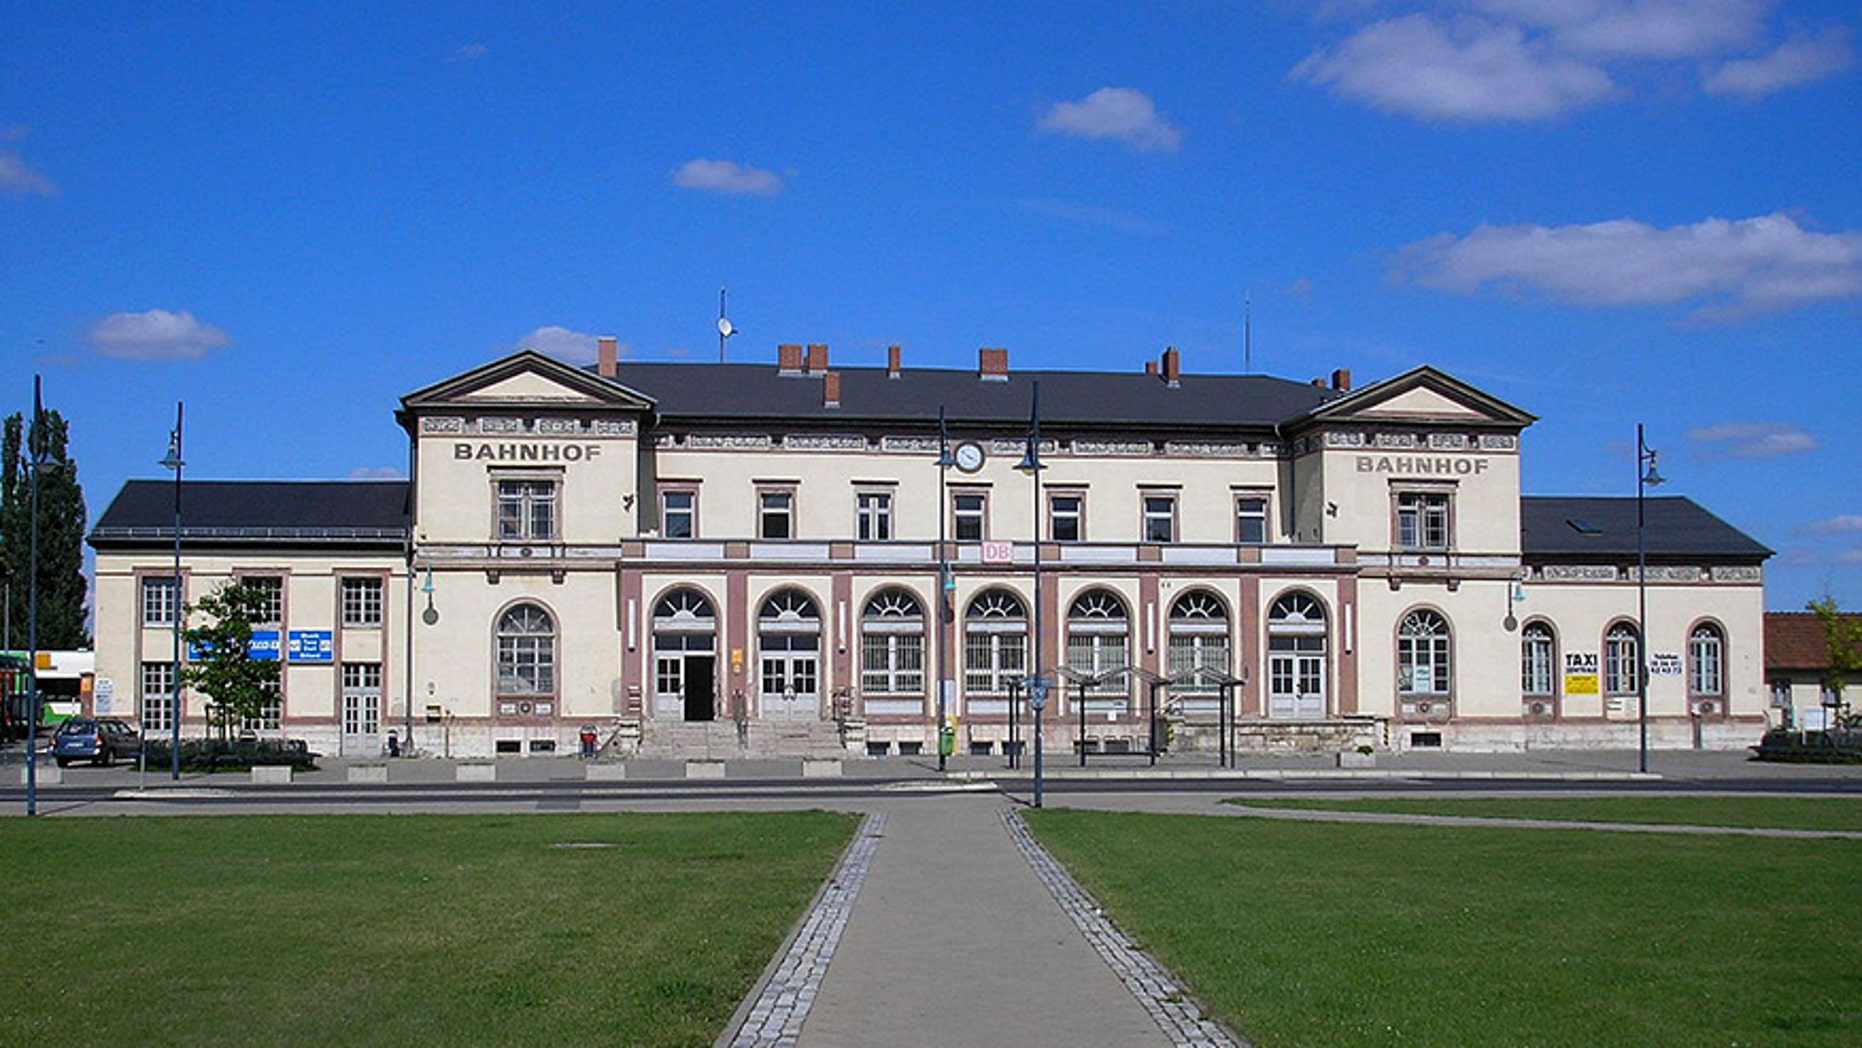 The woman said three men lured her to the Muhlhausen train station in Germany and repeatedly raped her last August.